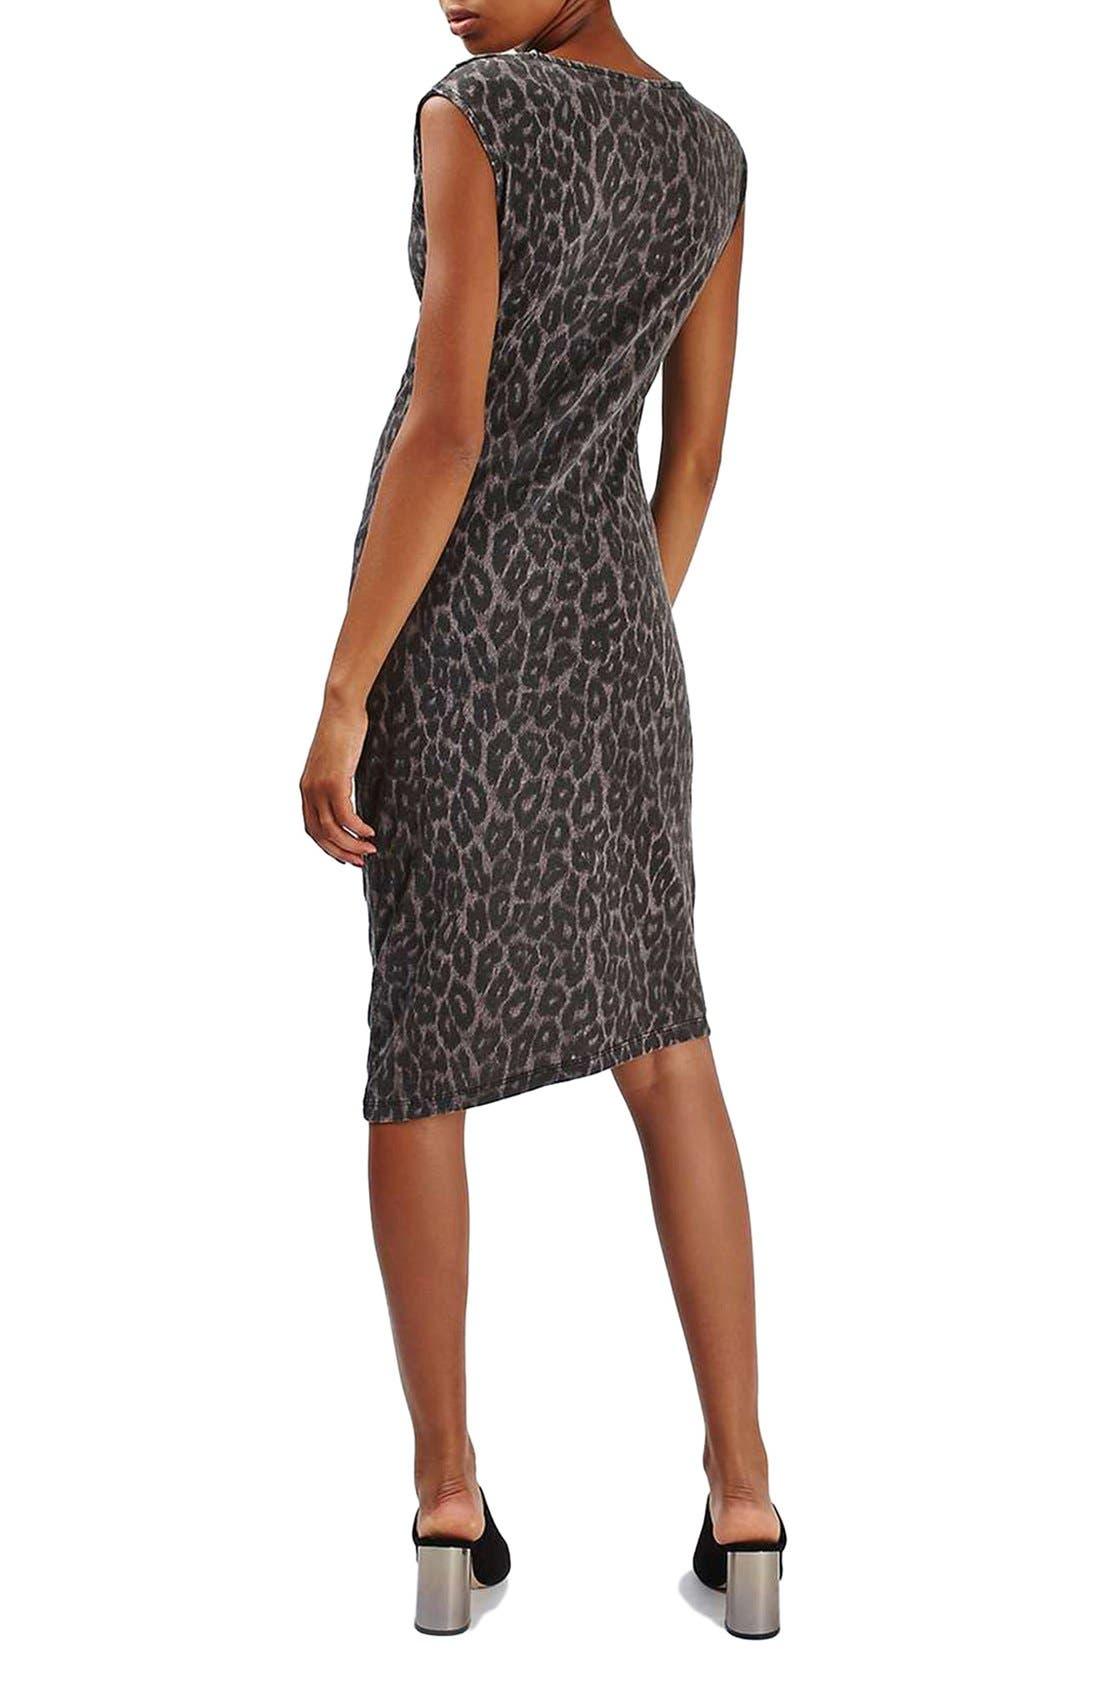 Leopard Print Midi Dress,                             Alternate thumbnail 4, color,                             001